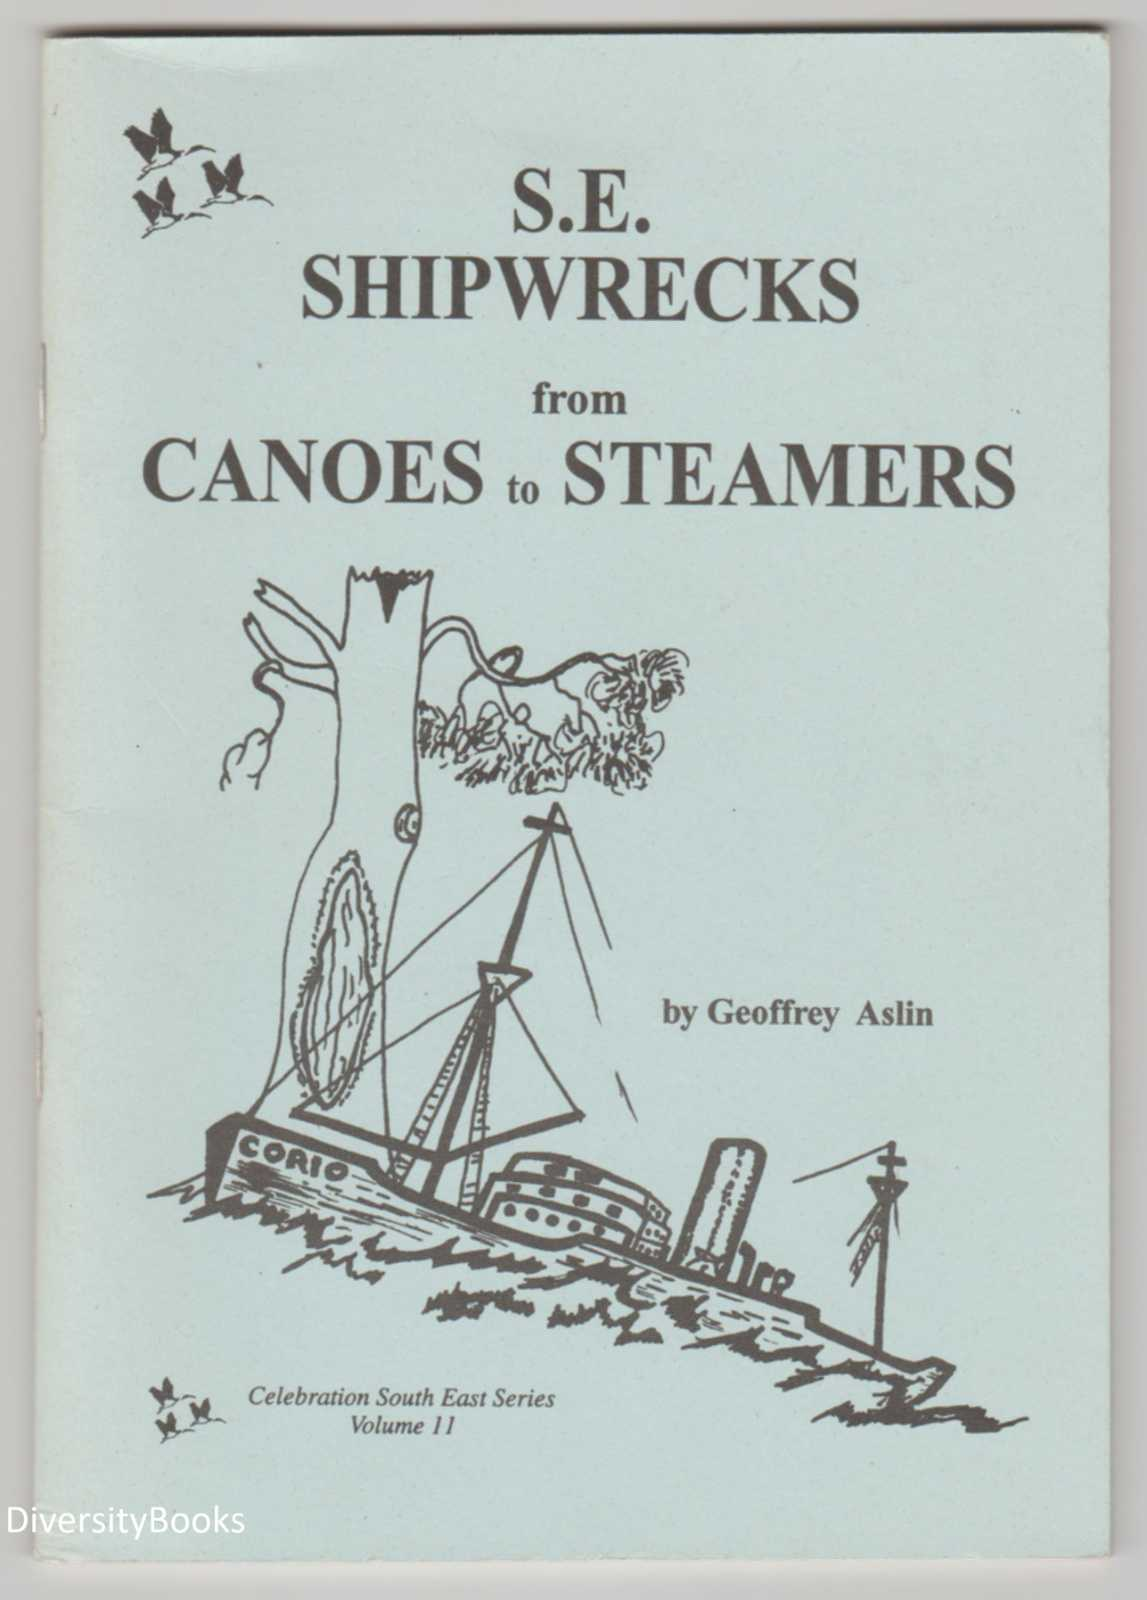 Image for S.E. SHIPWRECKS FROM CANOES TO STEAMERS